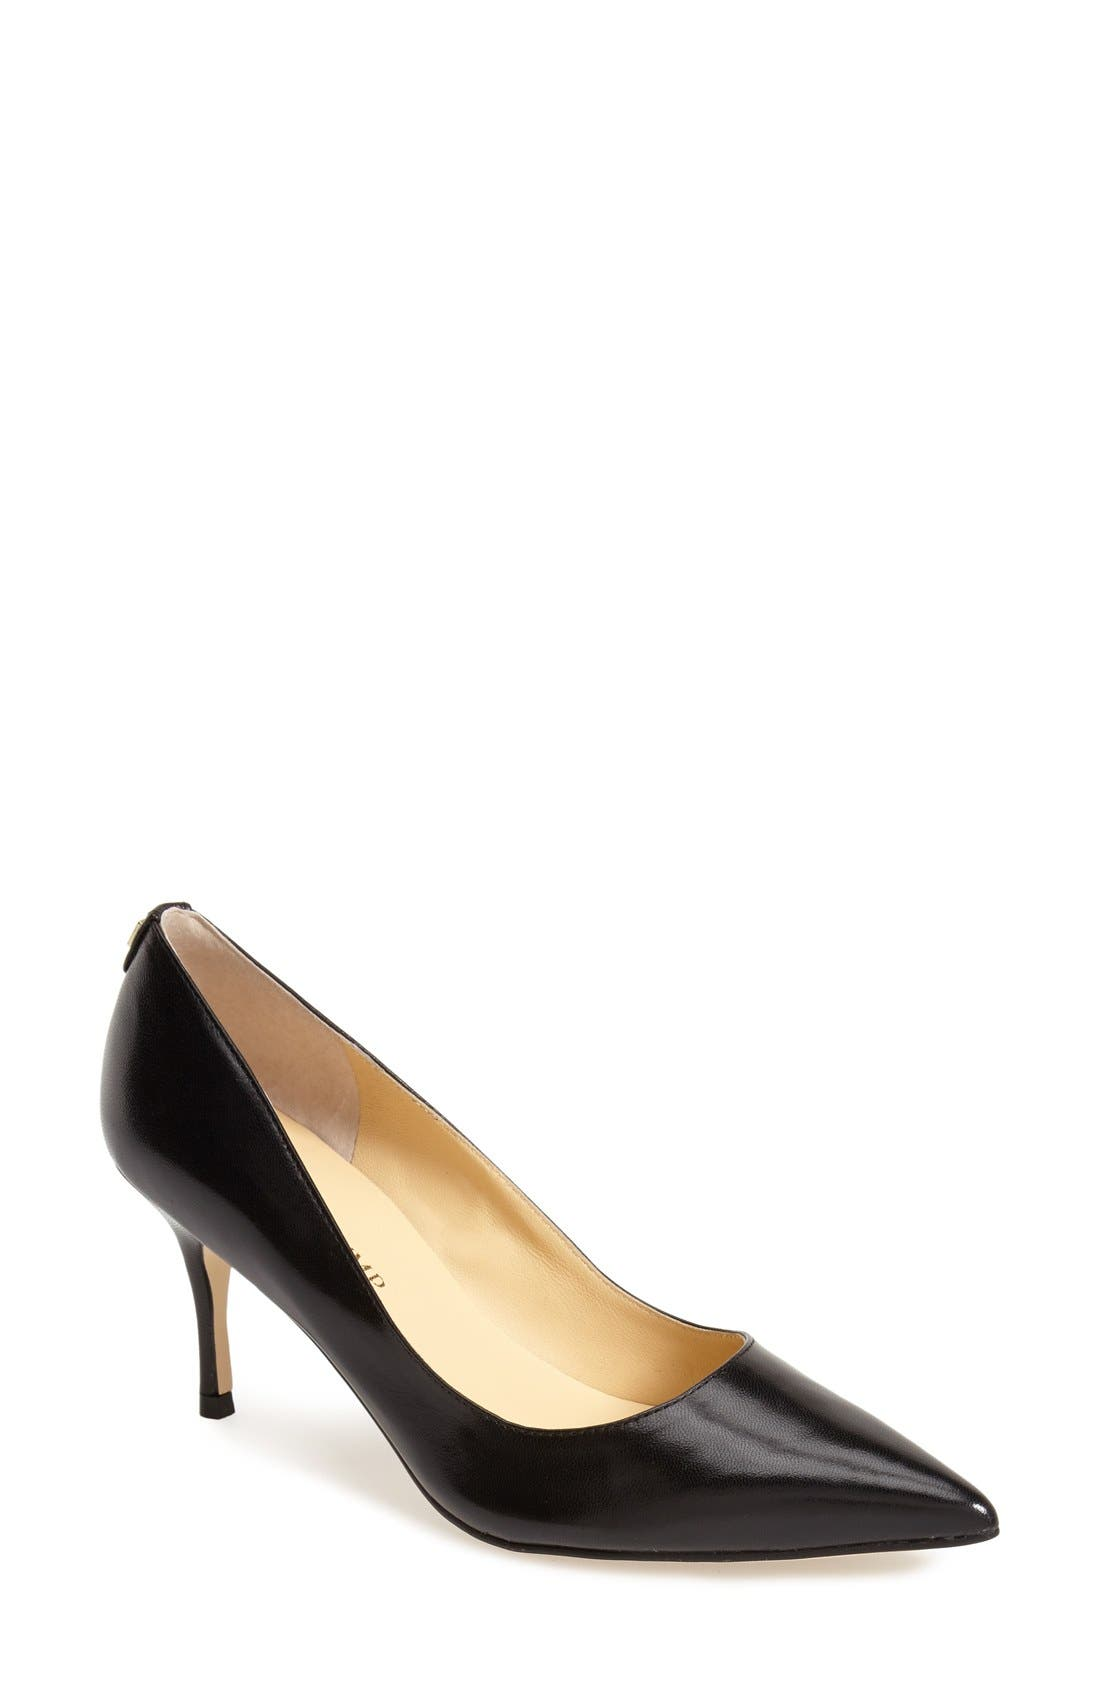 'Boni' Pointy Toe Pump,                             Main thumbnail 1, color,                             001